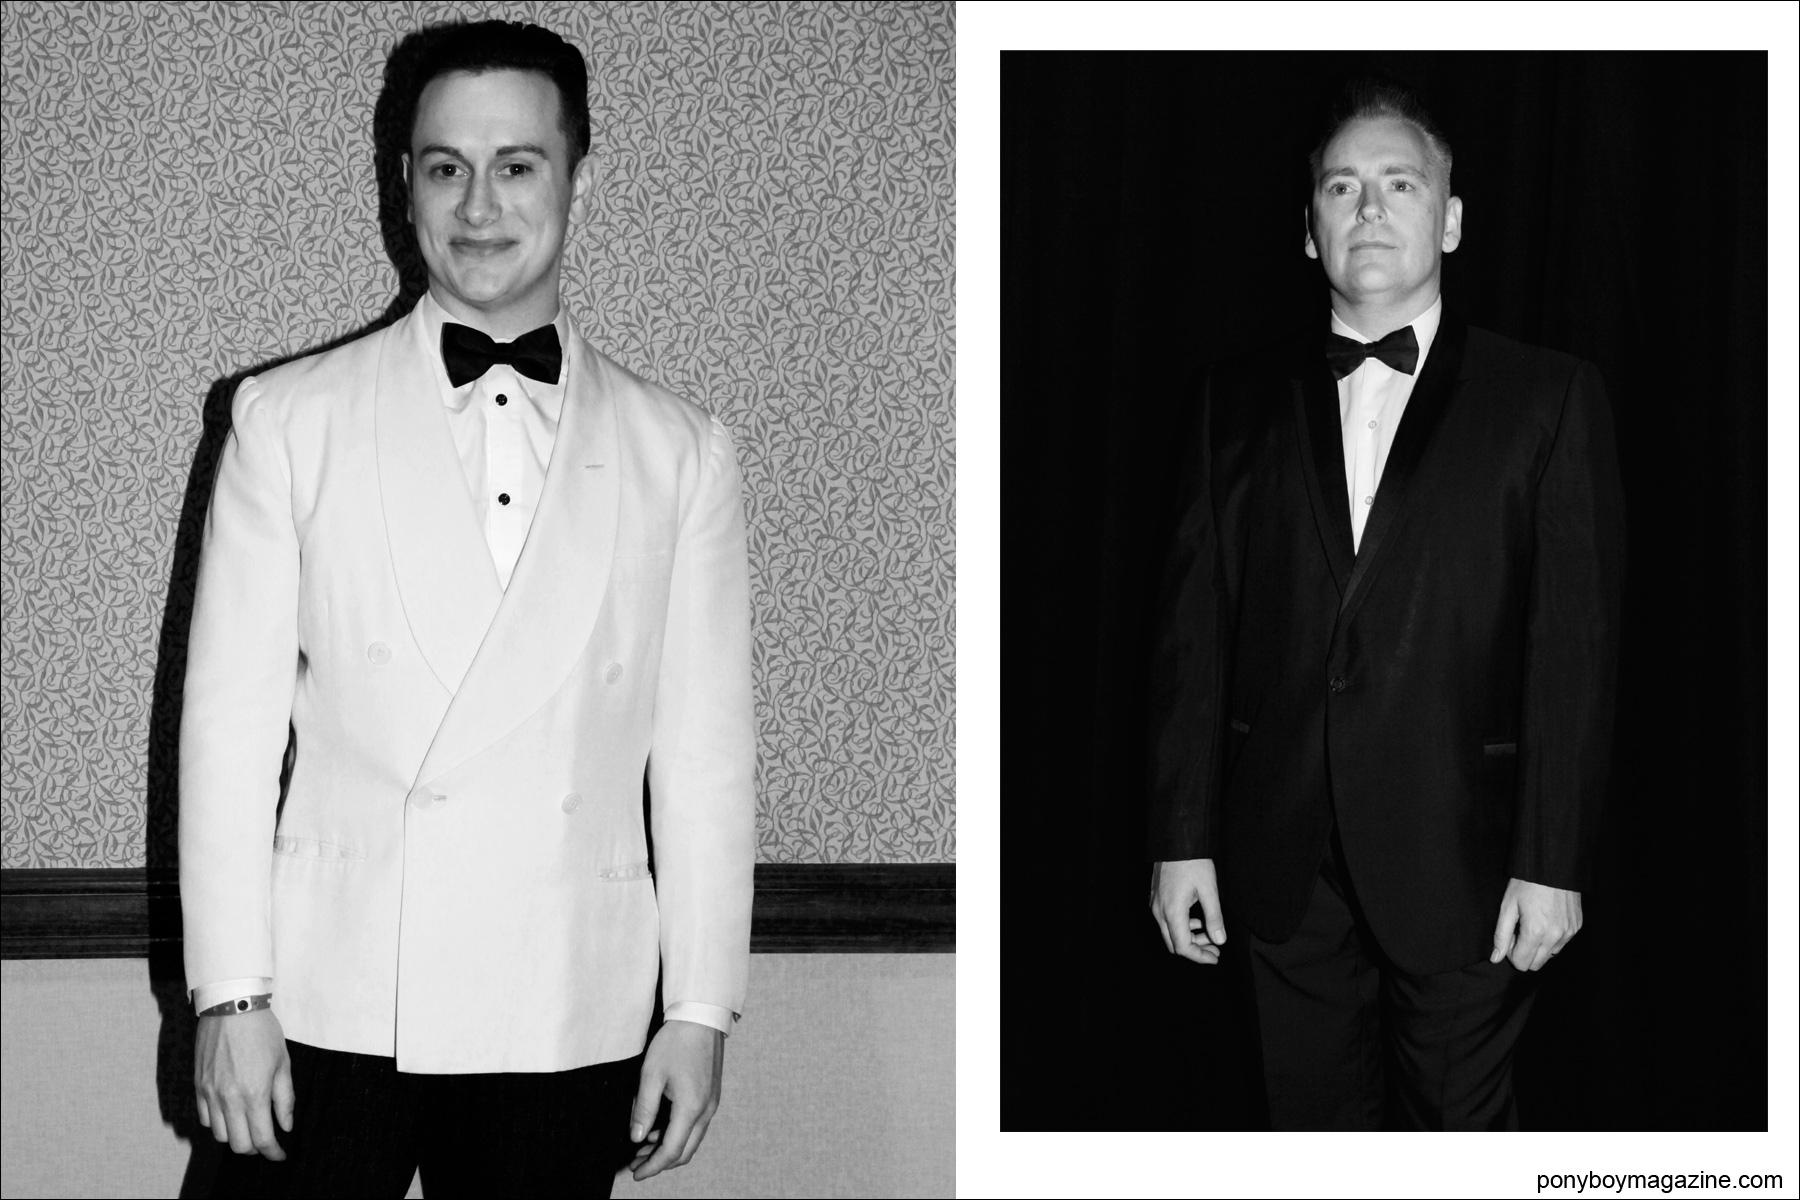 Men's vintage tuxedos photographed at Viva Las Vegas rockabilly weekender by Alexander Thompson for Ponyboy Magazine.